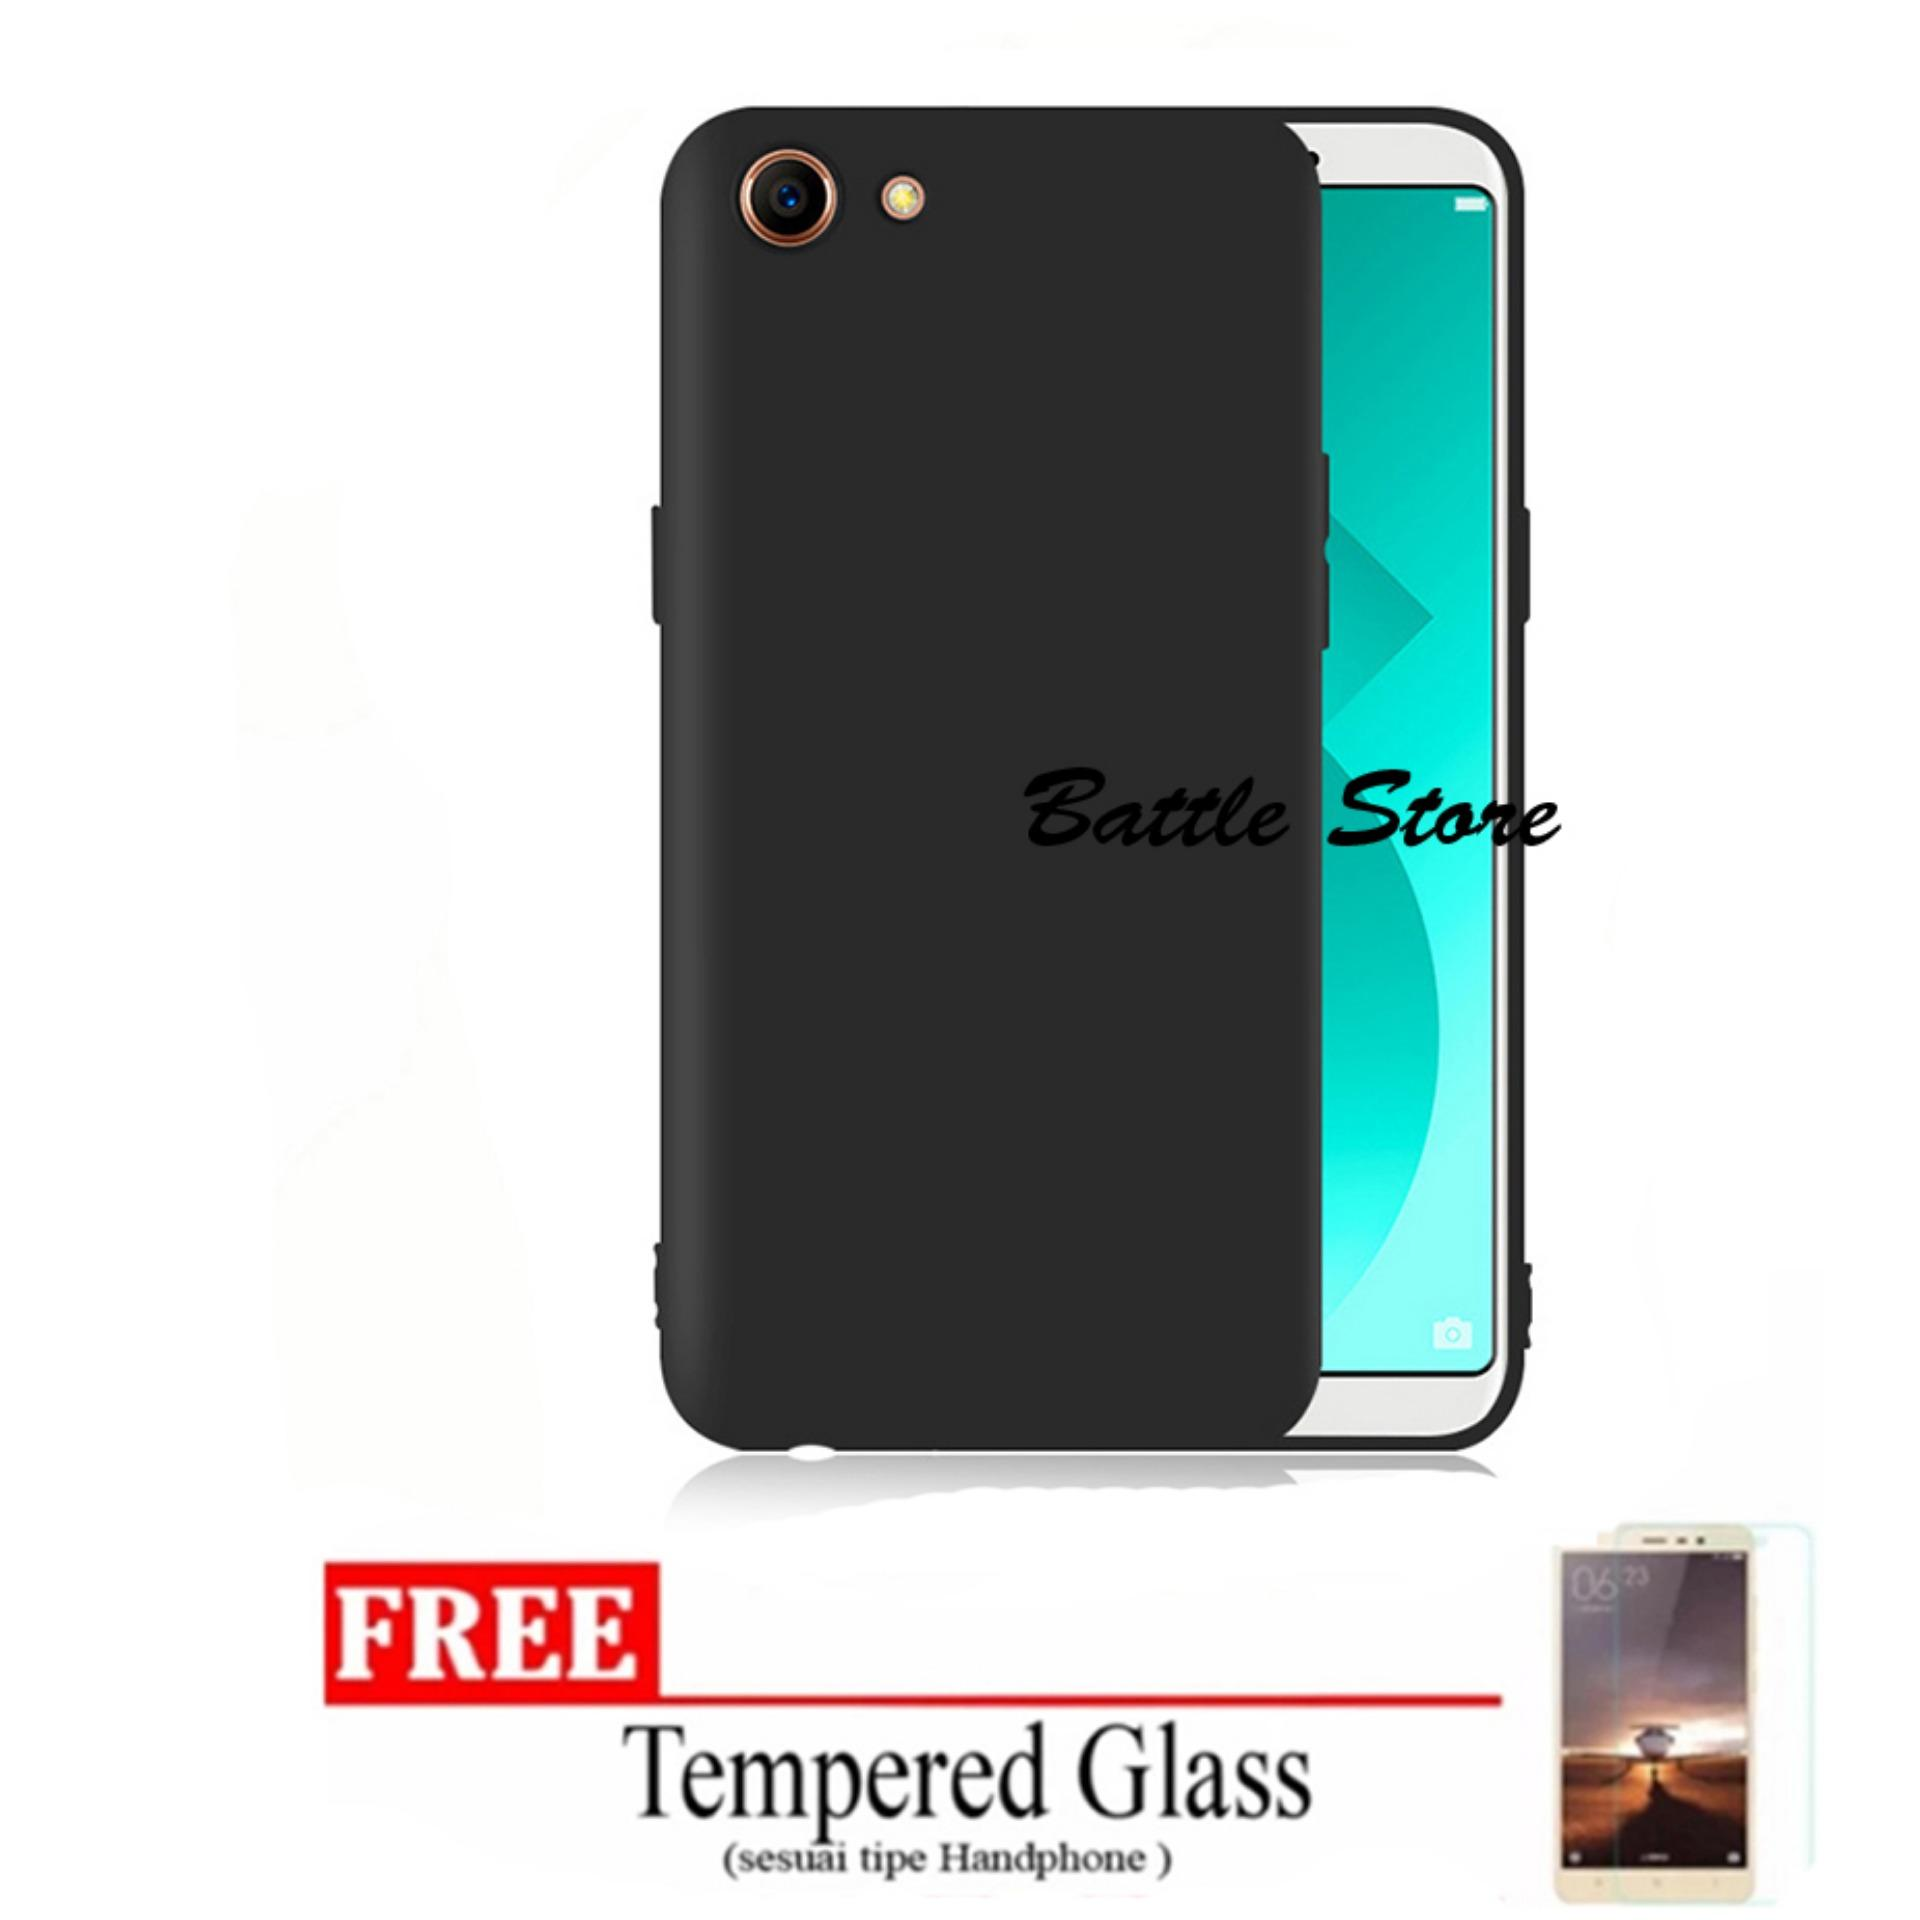 Rp 12.000. Case Slim Black Matte Oppo A83 / Oppo A1 Baby Skin Softcase Ultra Thin Jelly Silikon Babyskin + Free Tempered Glass ...